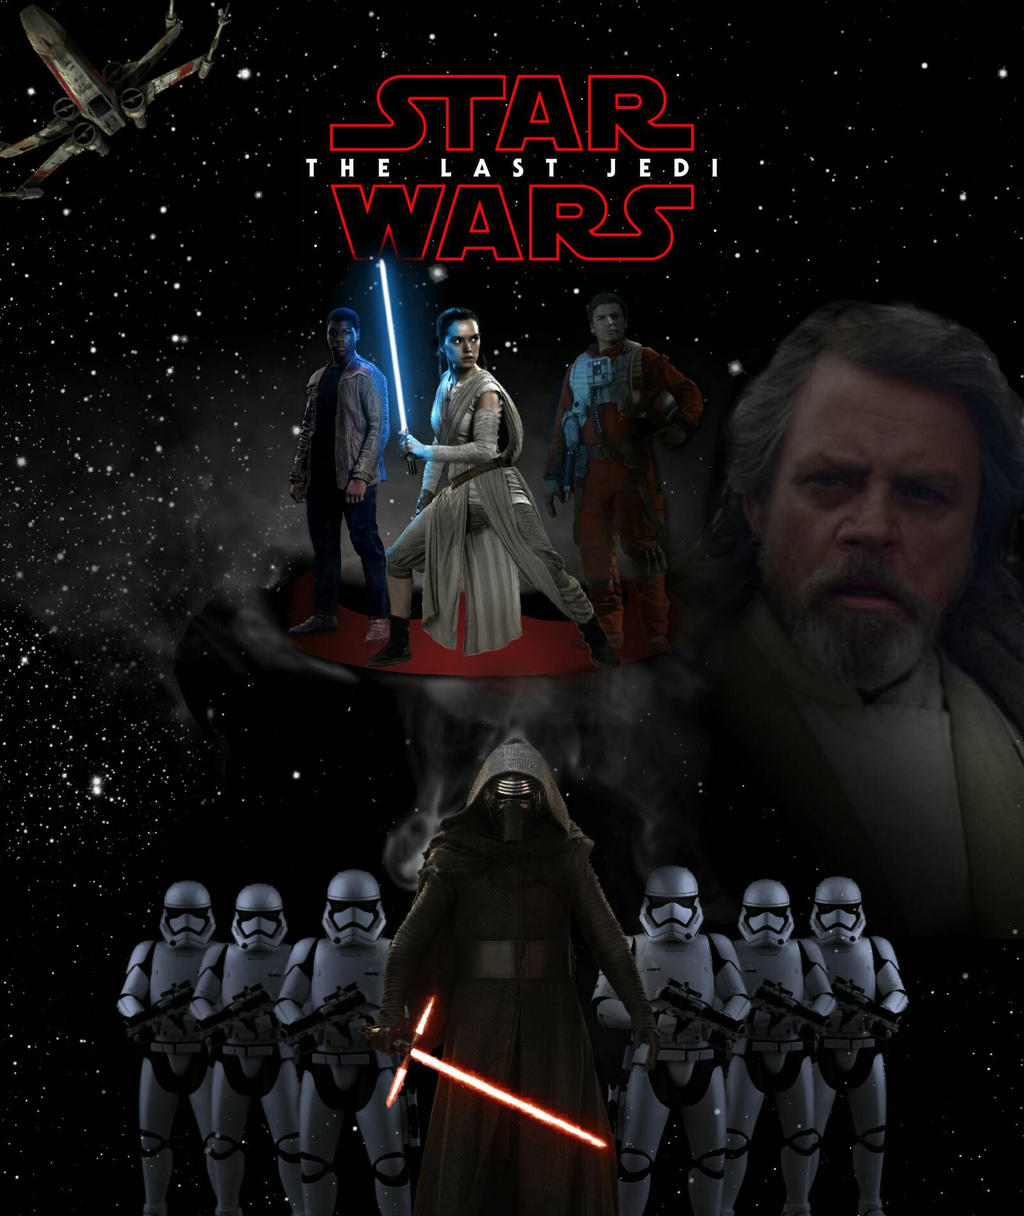 Star Wars: The Last Jedi Poster By CountIS On DeviantArt